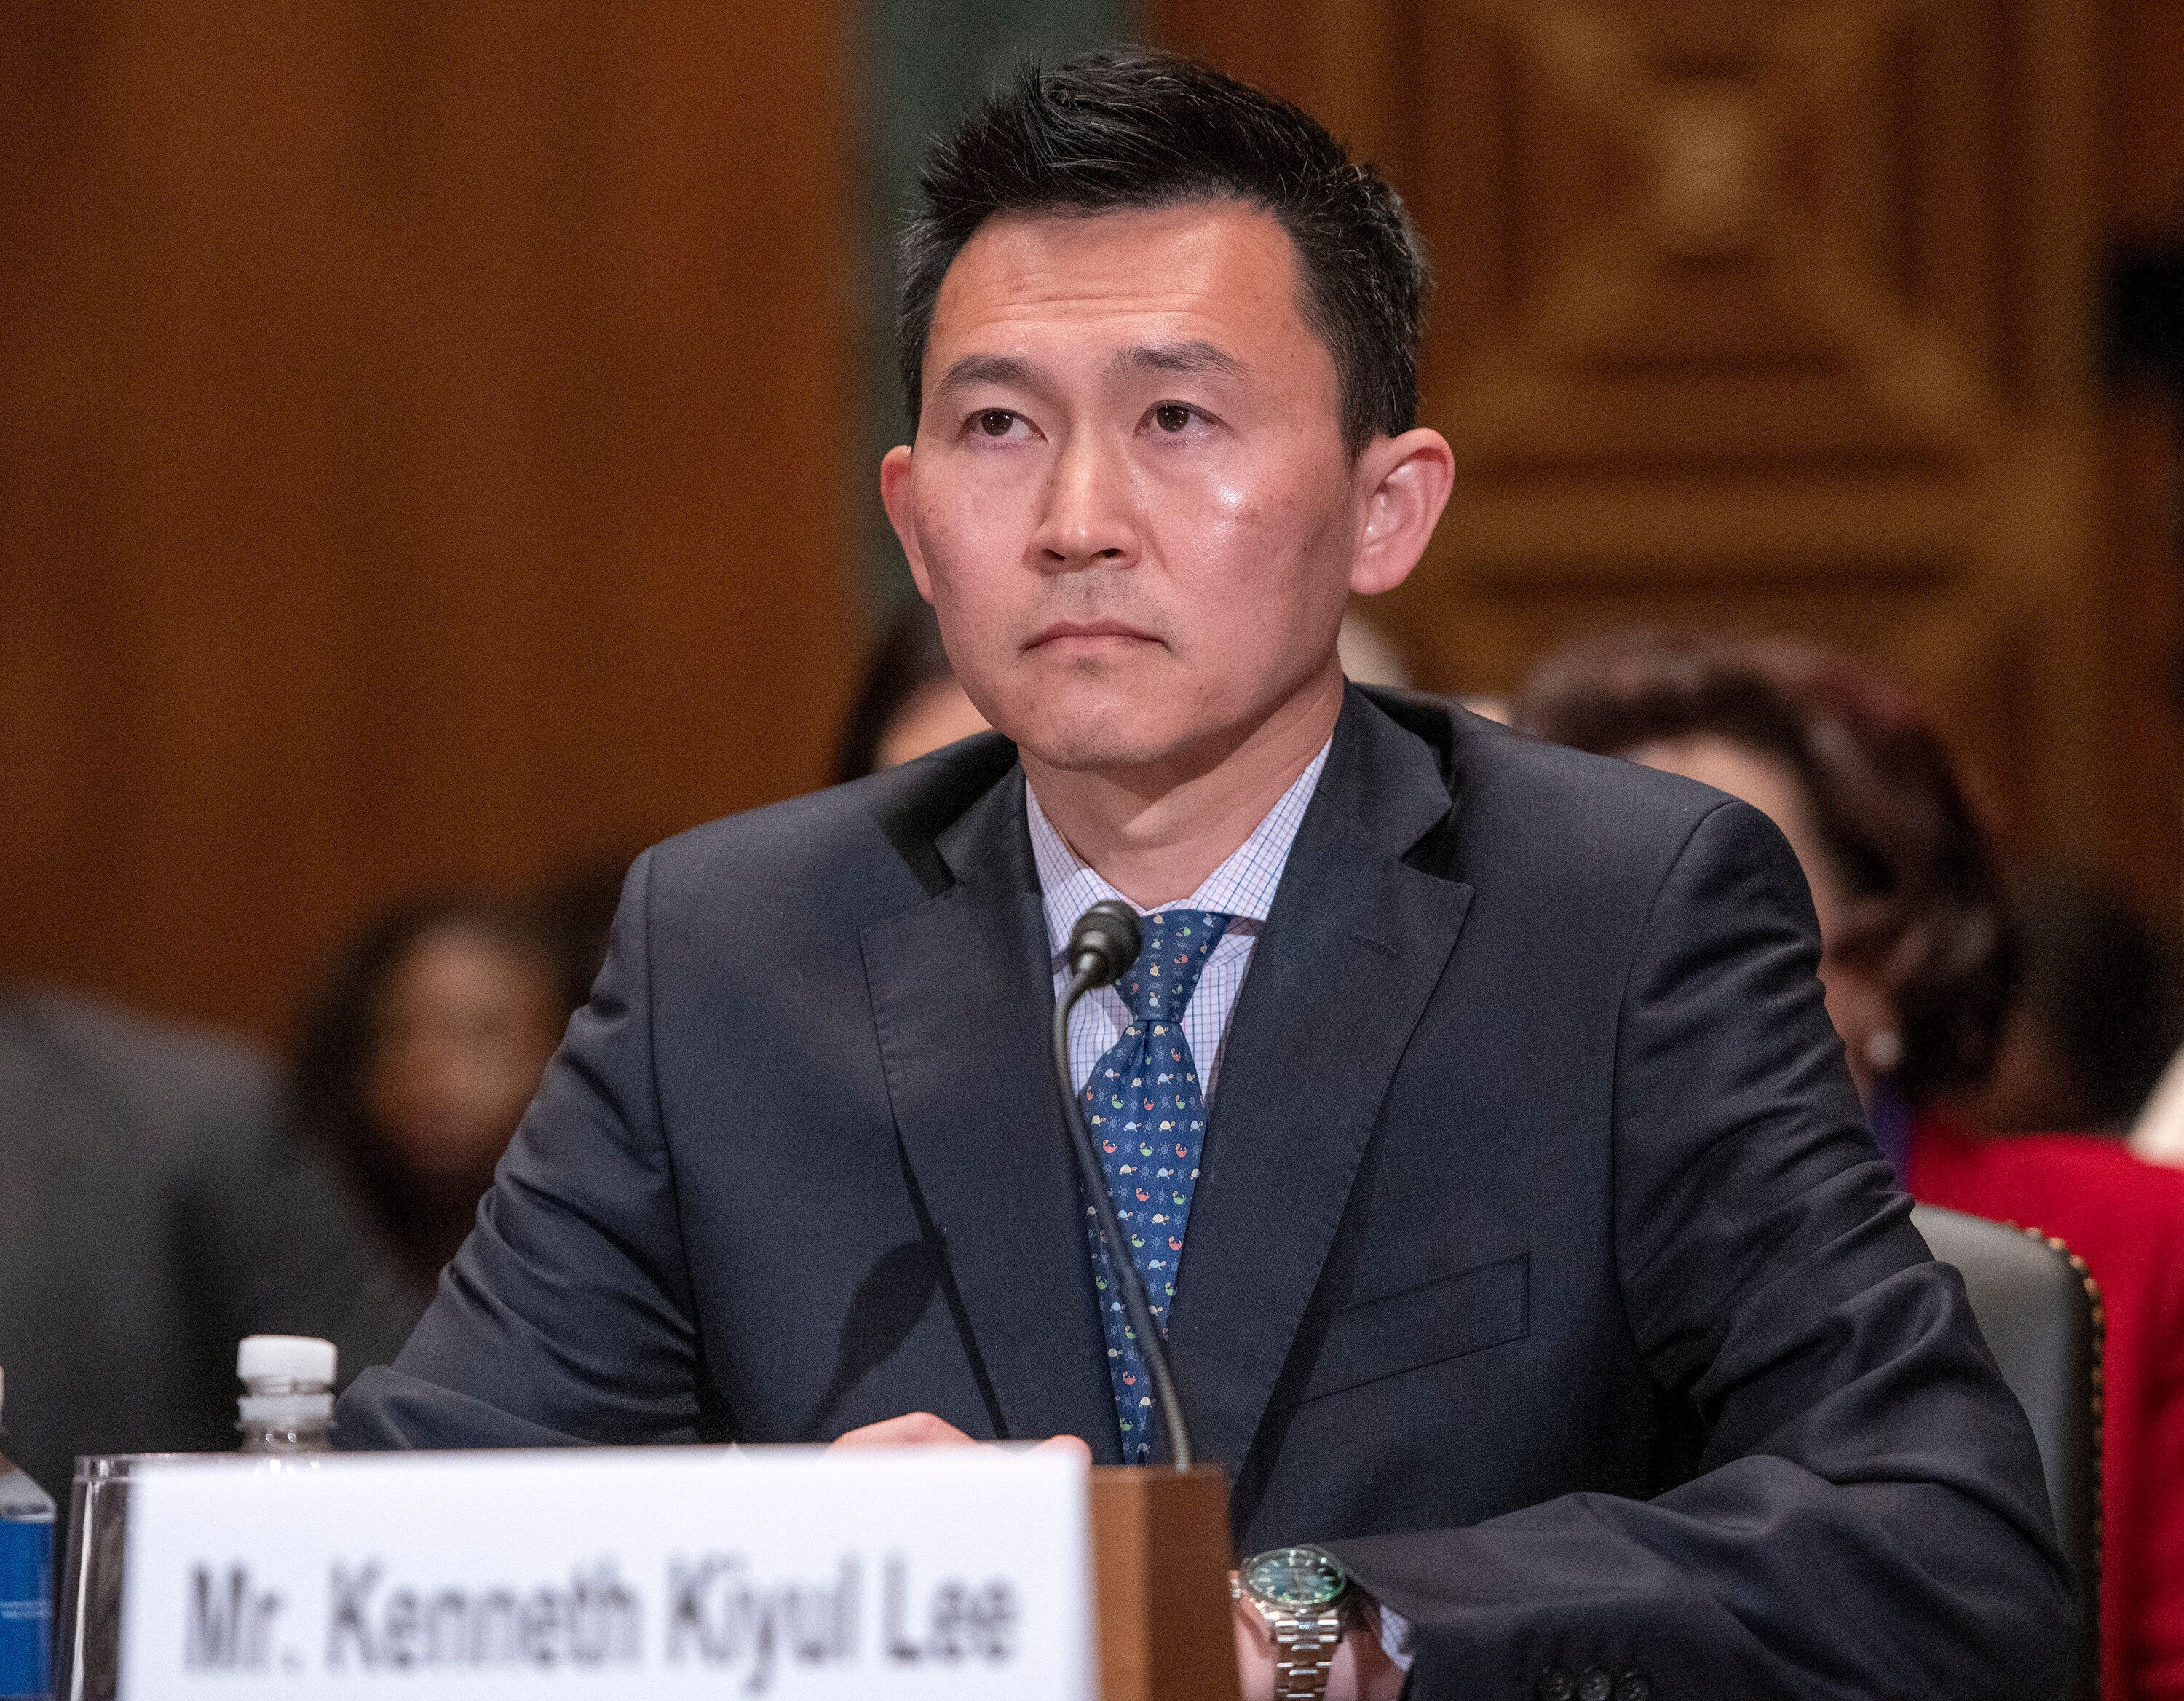 Kenneth Kiyul Lee testifies before the United States Senate Committee on the Judiciary on his nomination to be United States Circuit Judge For The Ninth Circuit on Capitol Hill in Washington, DC on Wednesday, March 13, 2019. Credit: Ron Sachs / CNP/Sipa USA